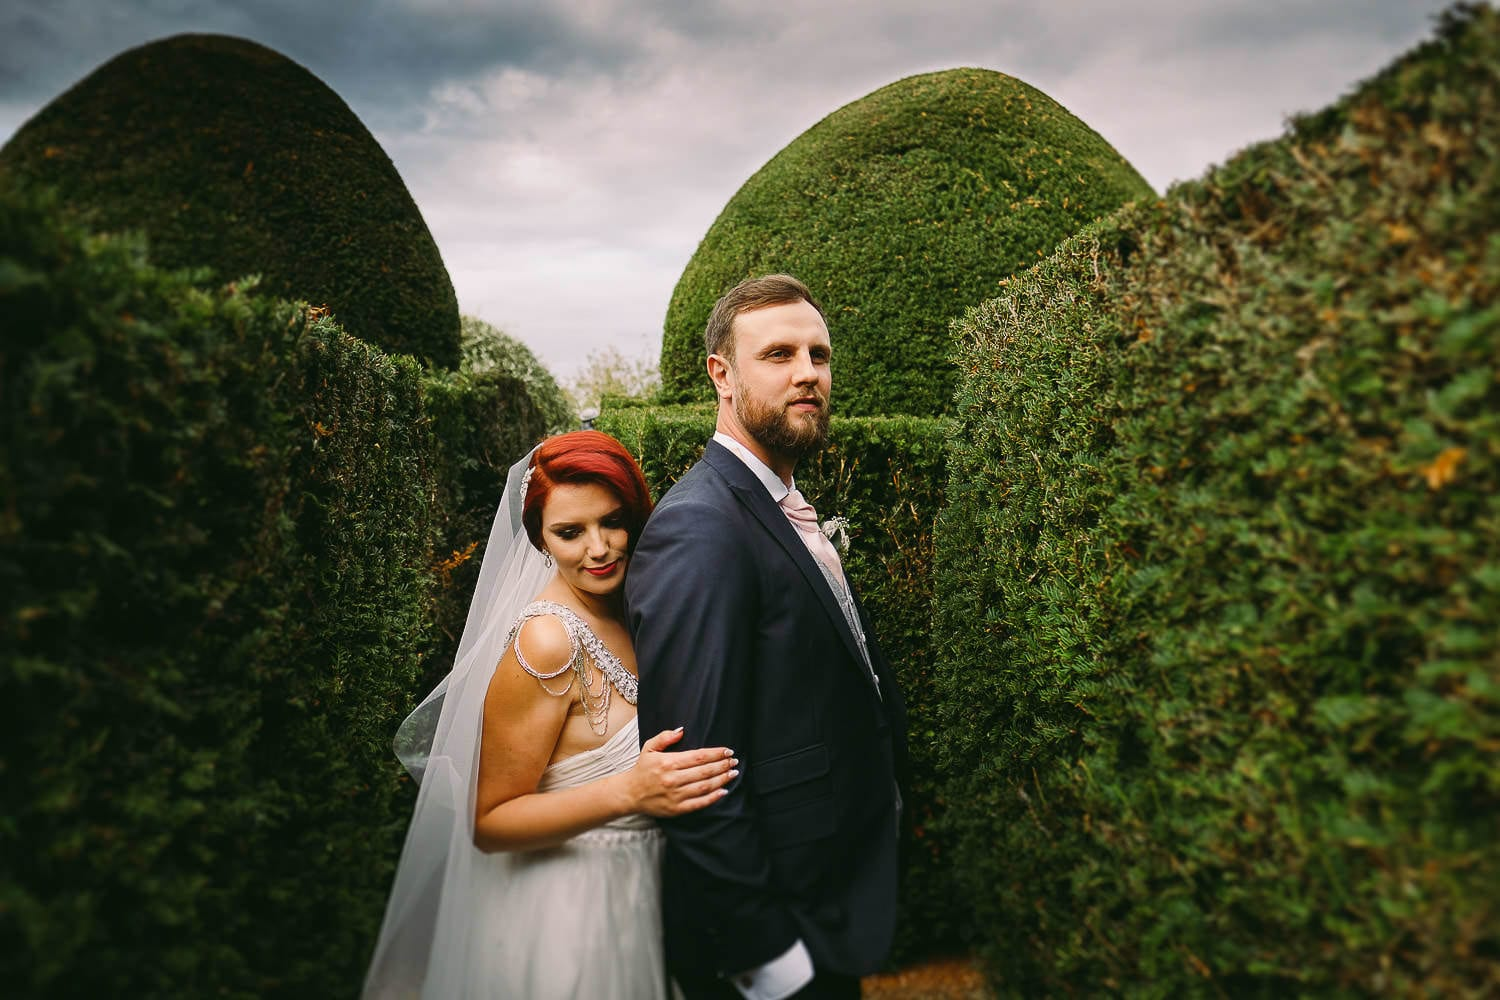 The bride hugs the groom in the gardens at Birtsmorton court